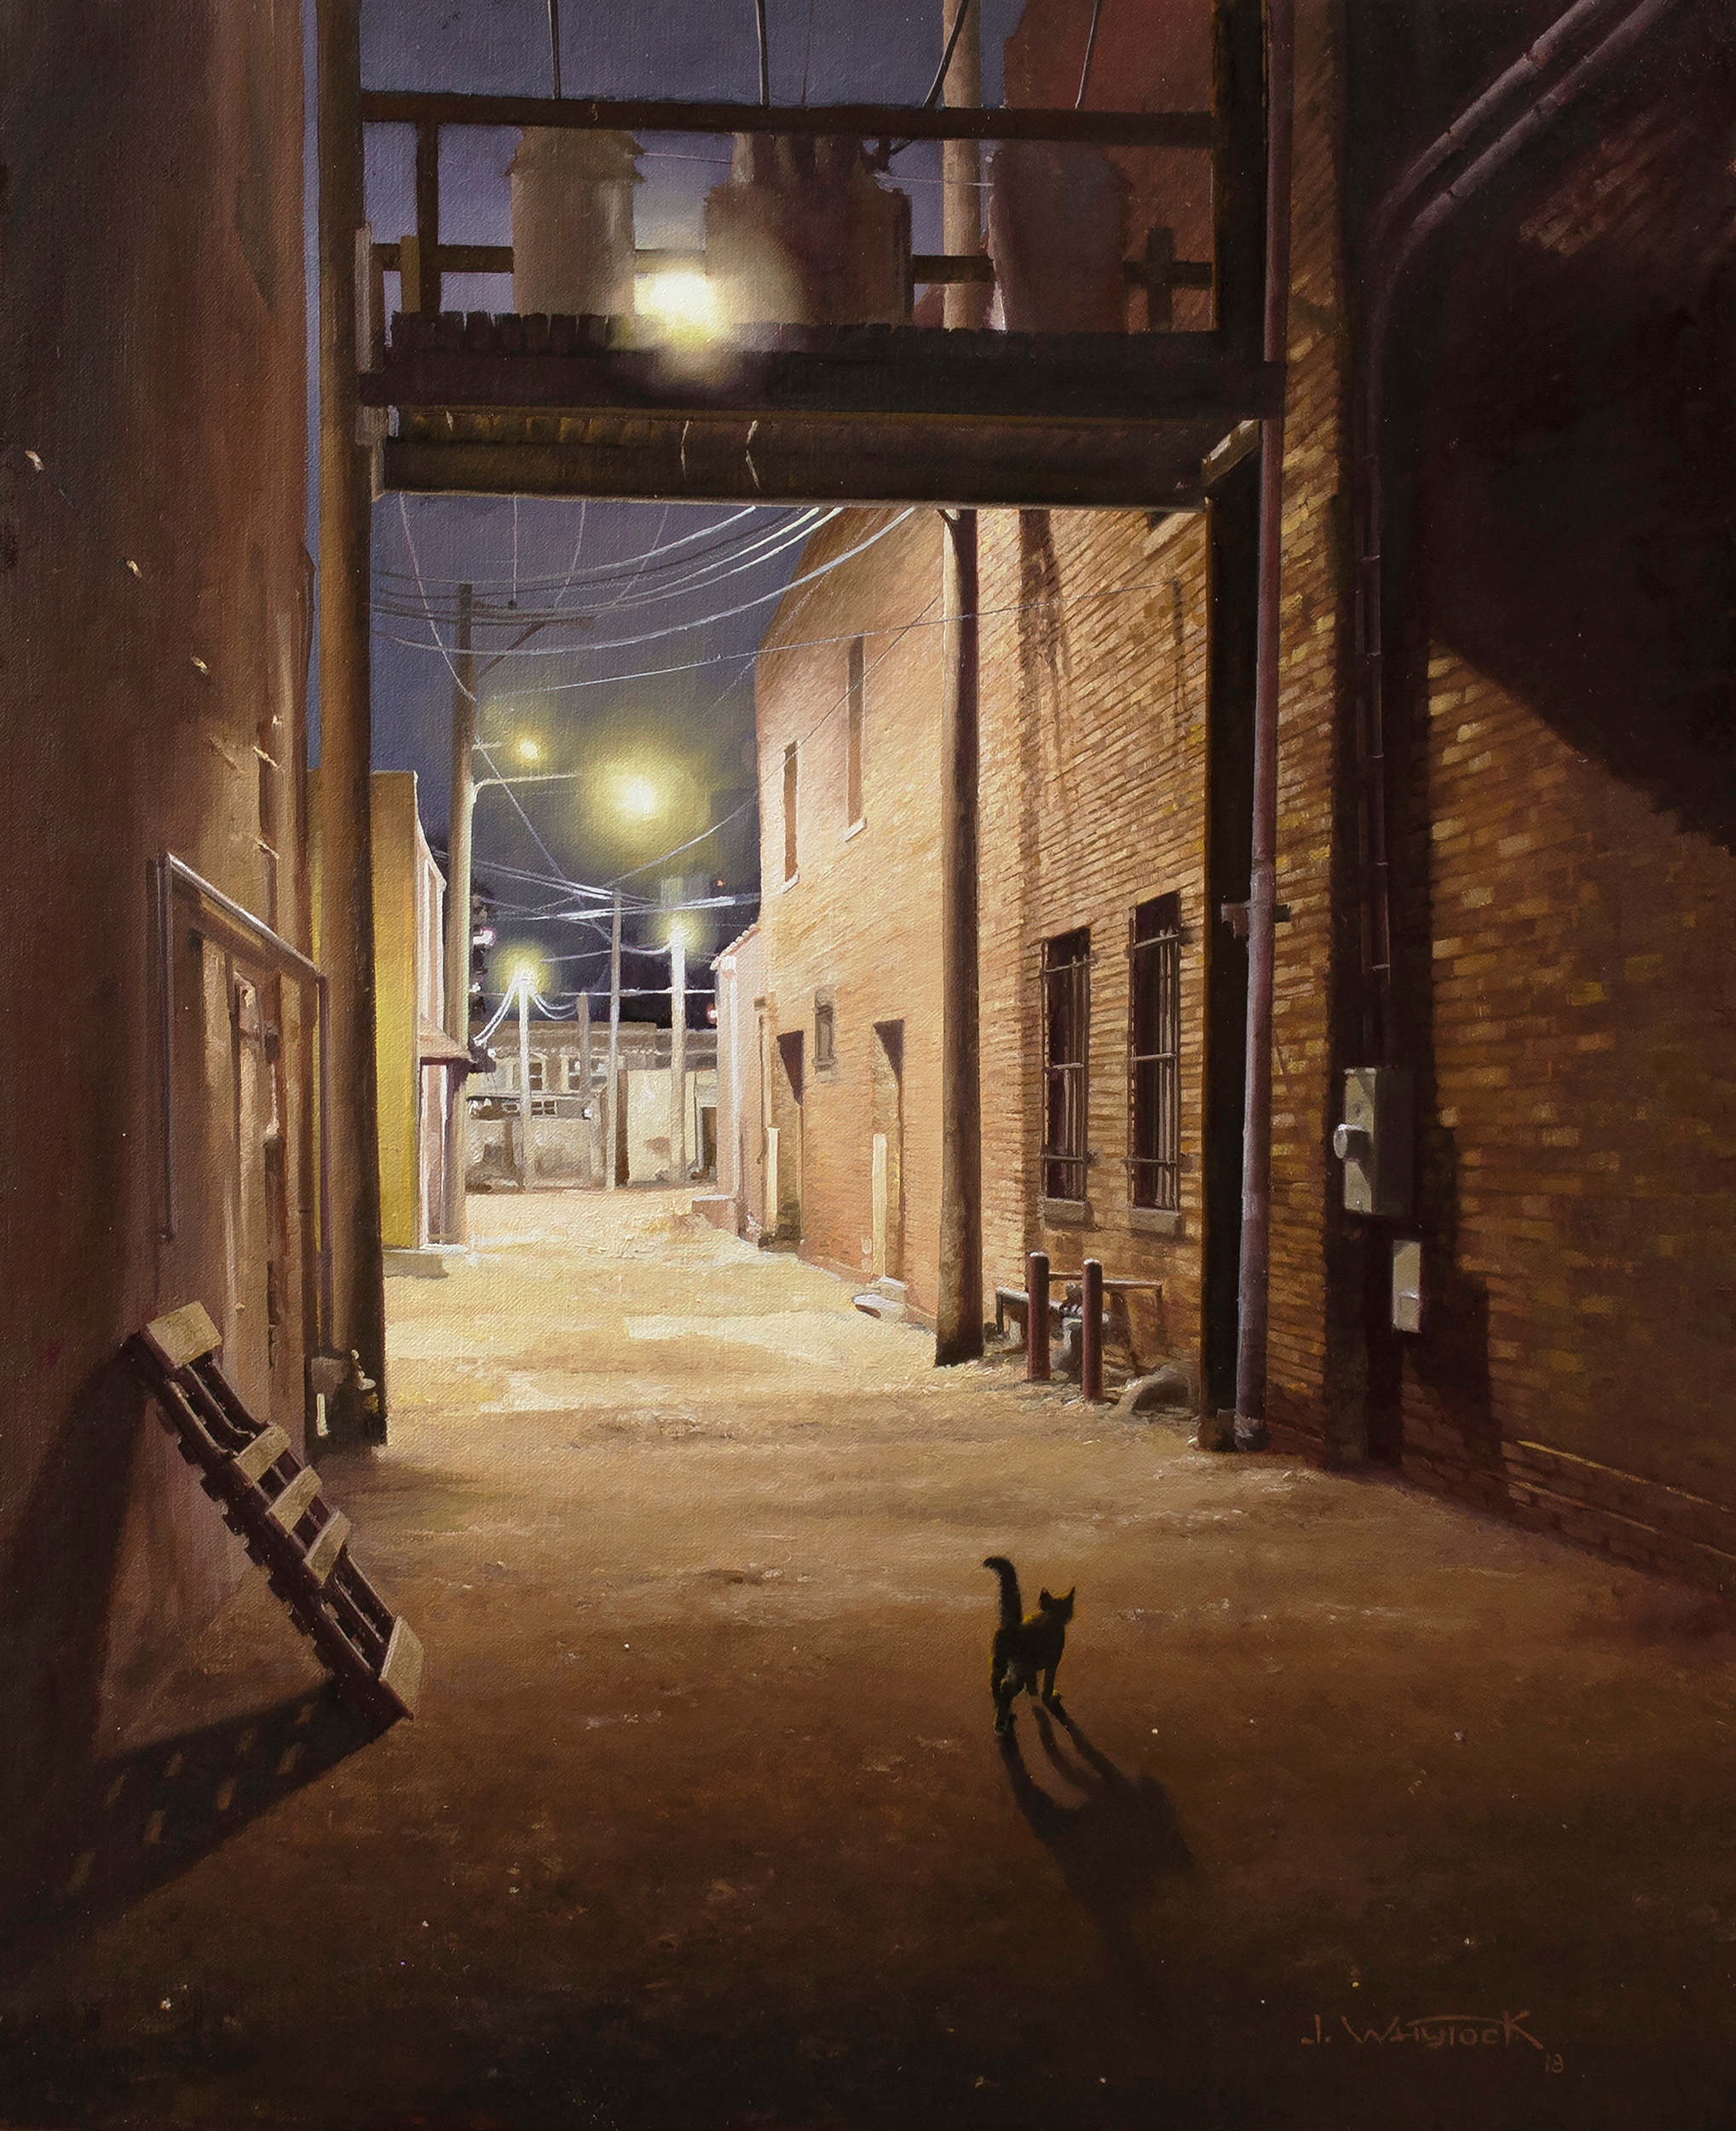 Alley Kitty an Original Painting by John Whytock